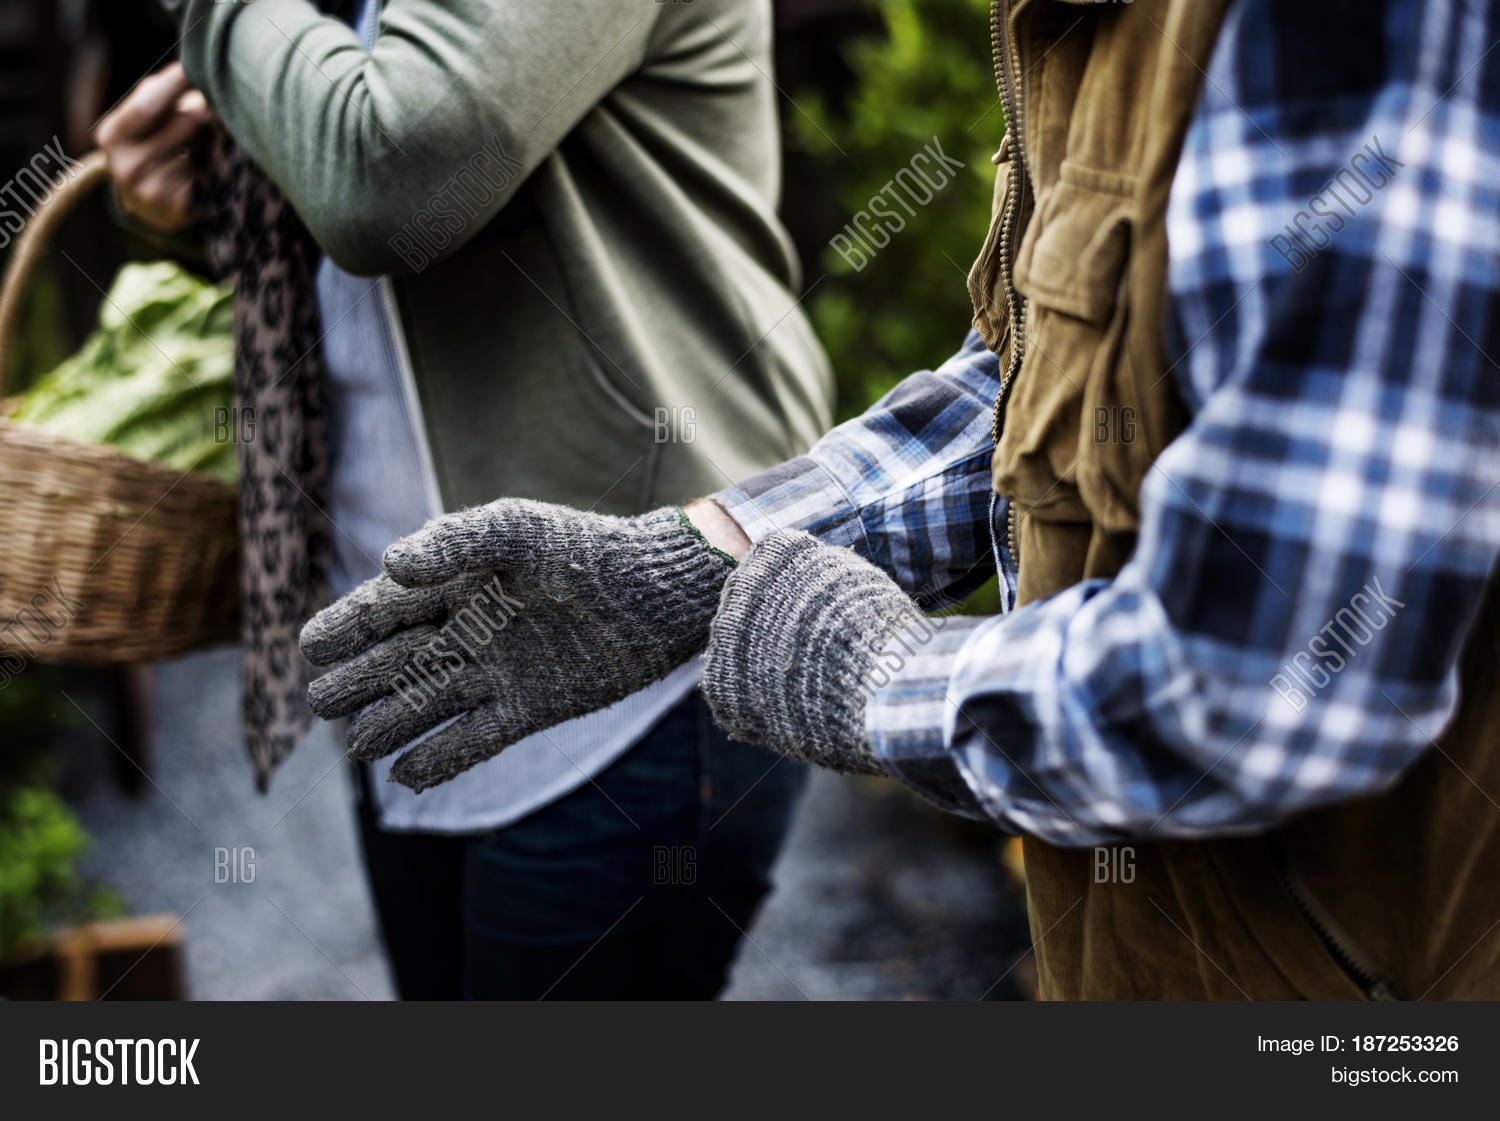 People hands wearing gardening image photo bigstock for Big hands for gardening